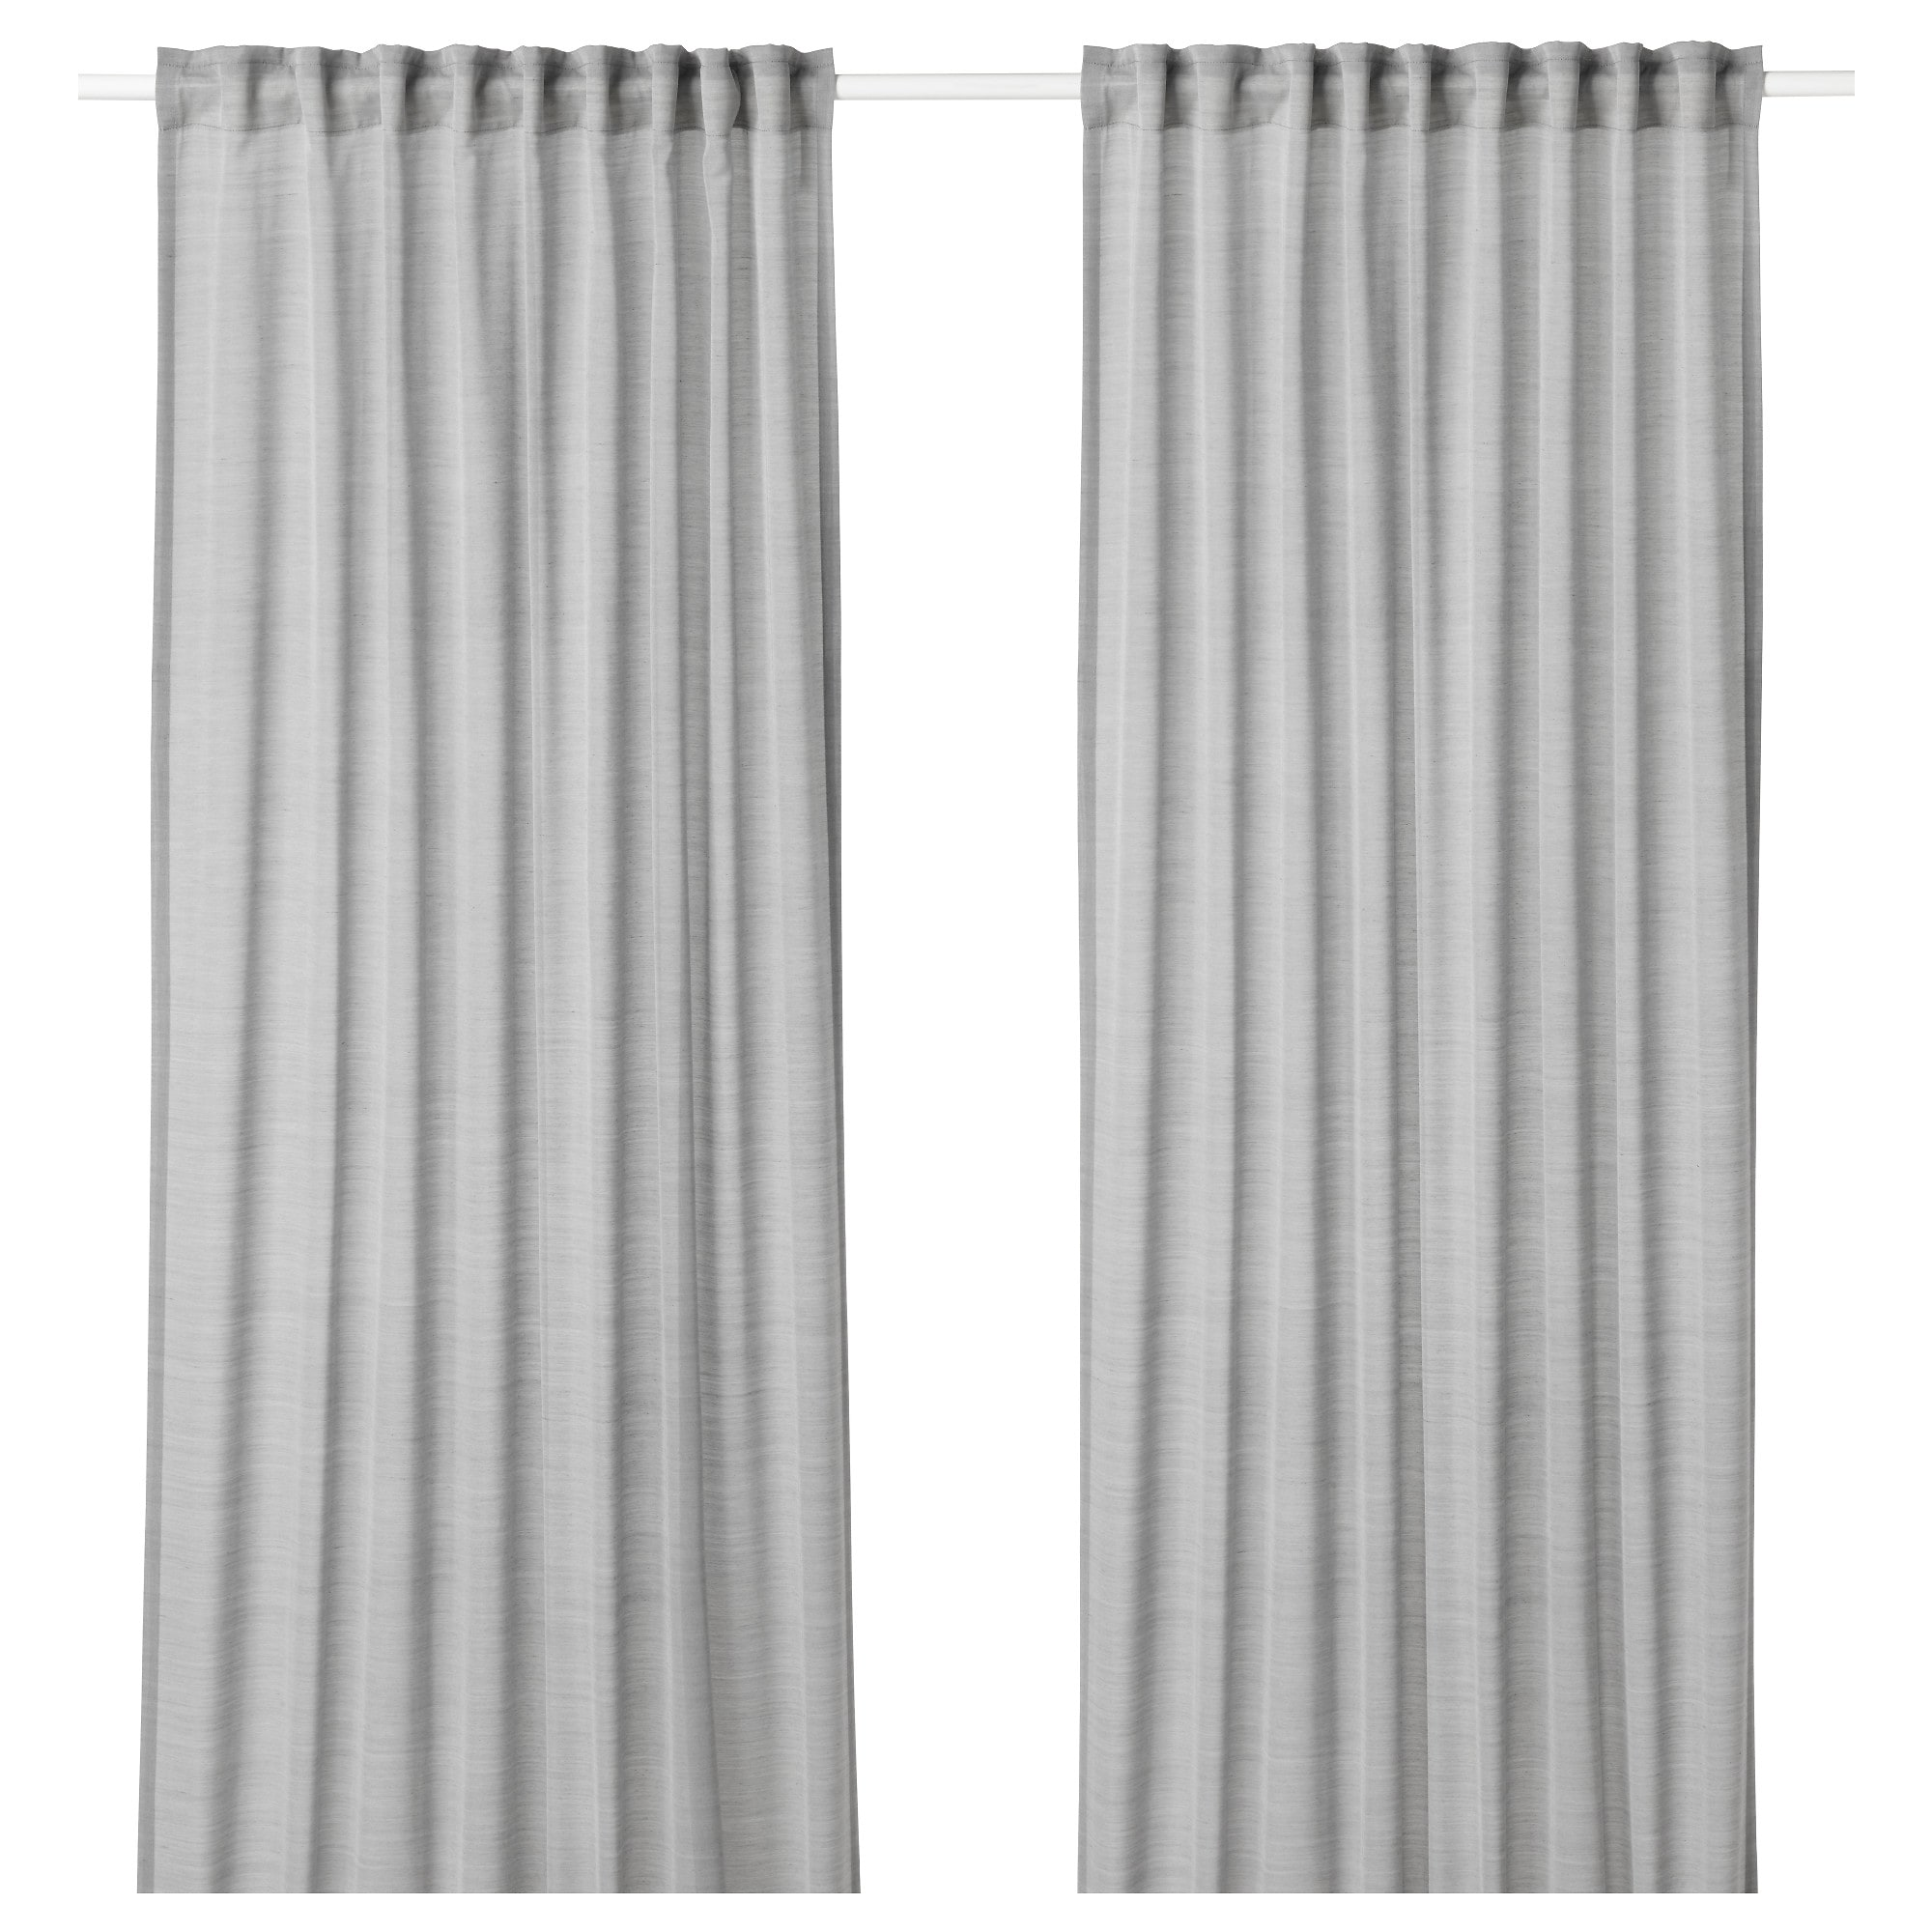 Hilja Curtains 1 Pair Gray Ikea Curtains Ikea Curtains Ikea